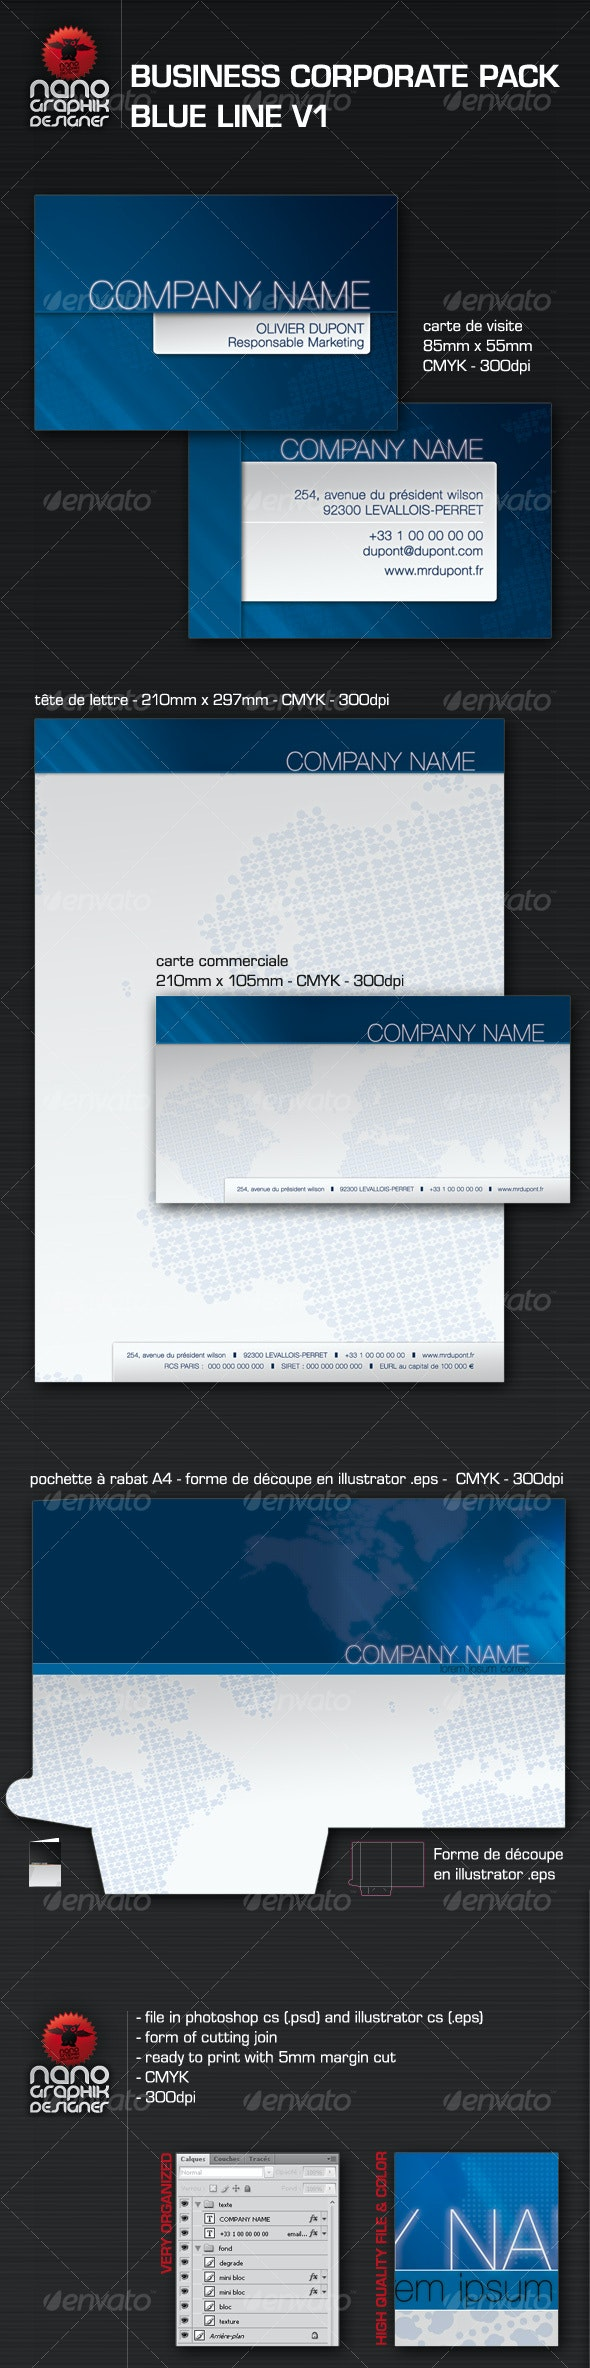 business corporate pack blue line v1 - Corporate Business Cards